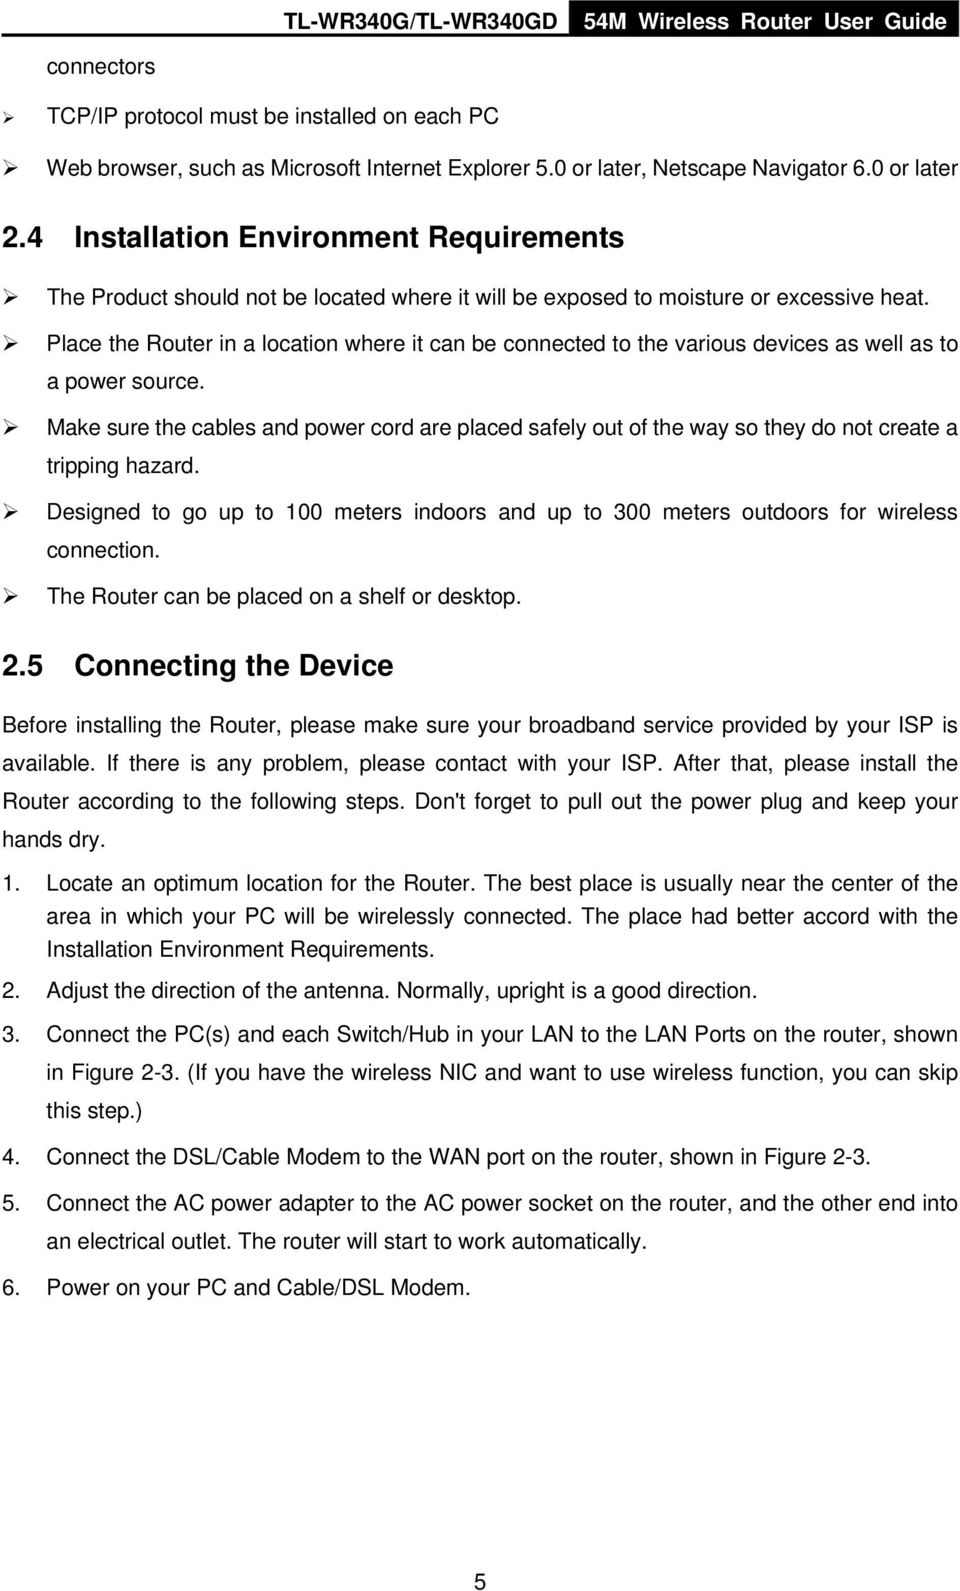 Place the Router in a location where it can be connected to the various devices as well as to a power source.